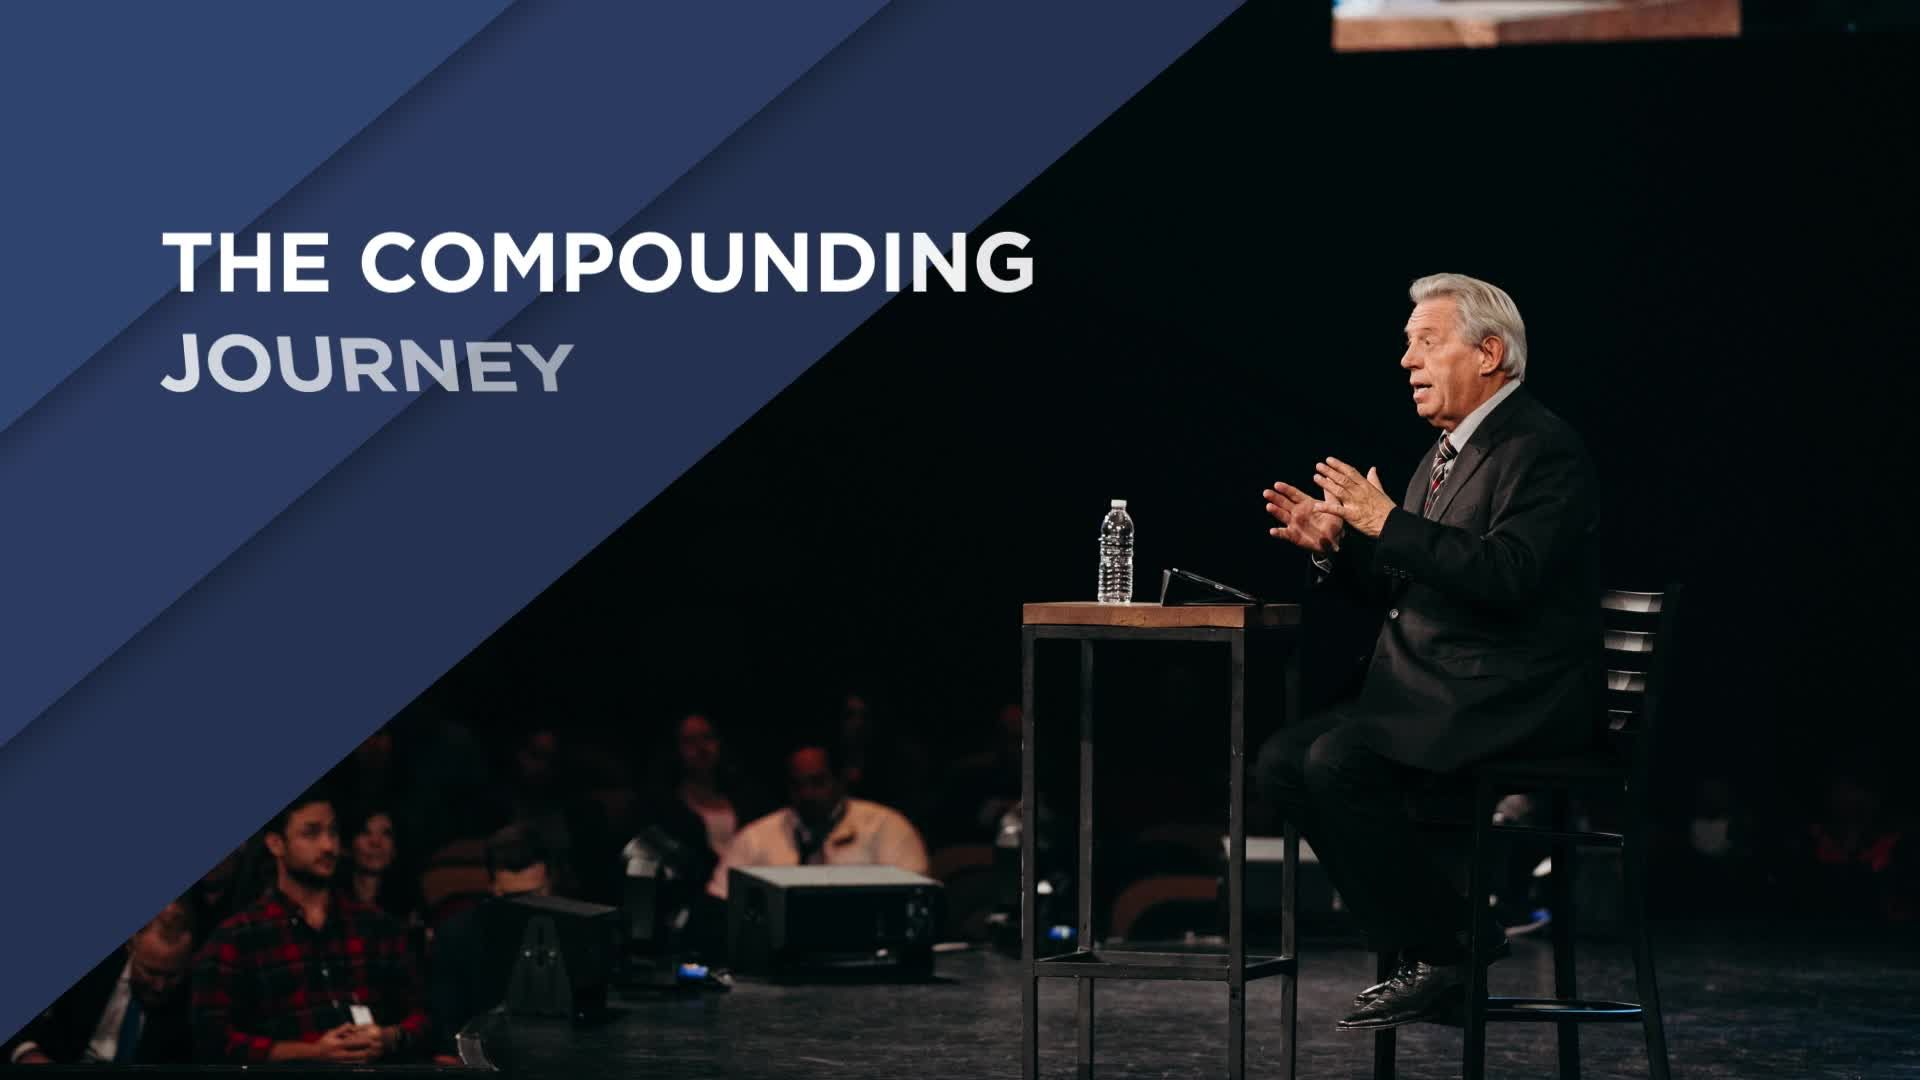 The Compounding Journey